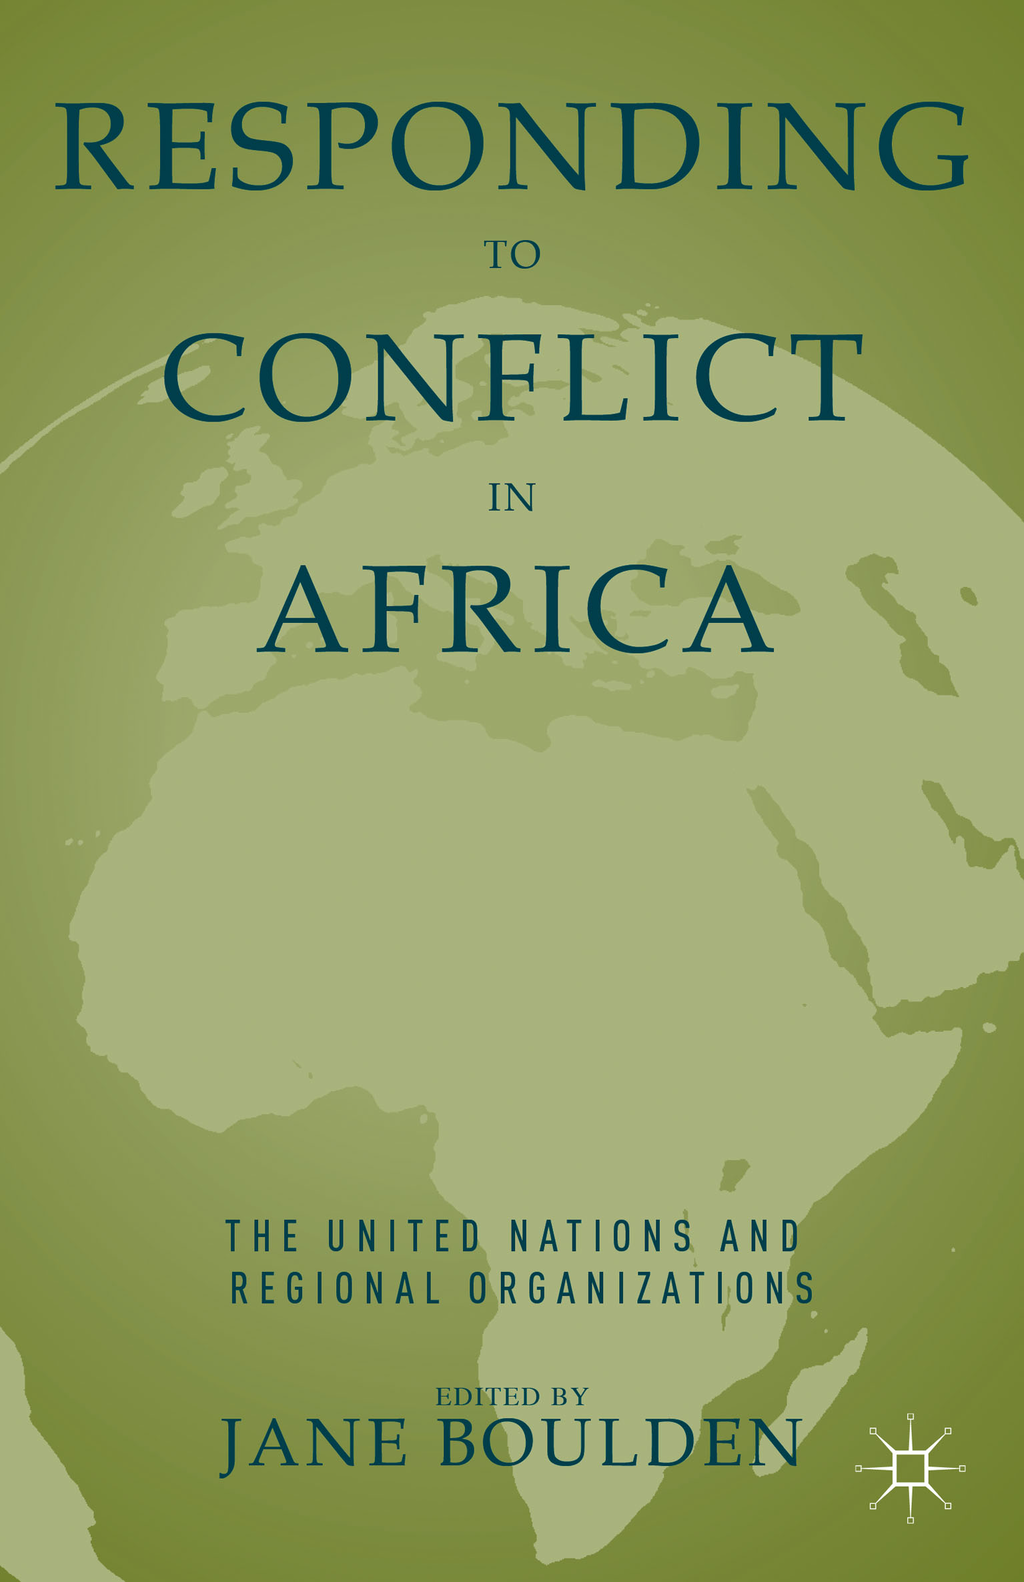 Responding to Conflict in Africa The United Nations and Regional Organizations